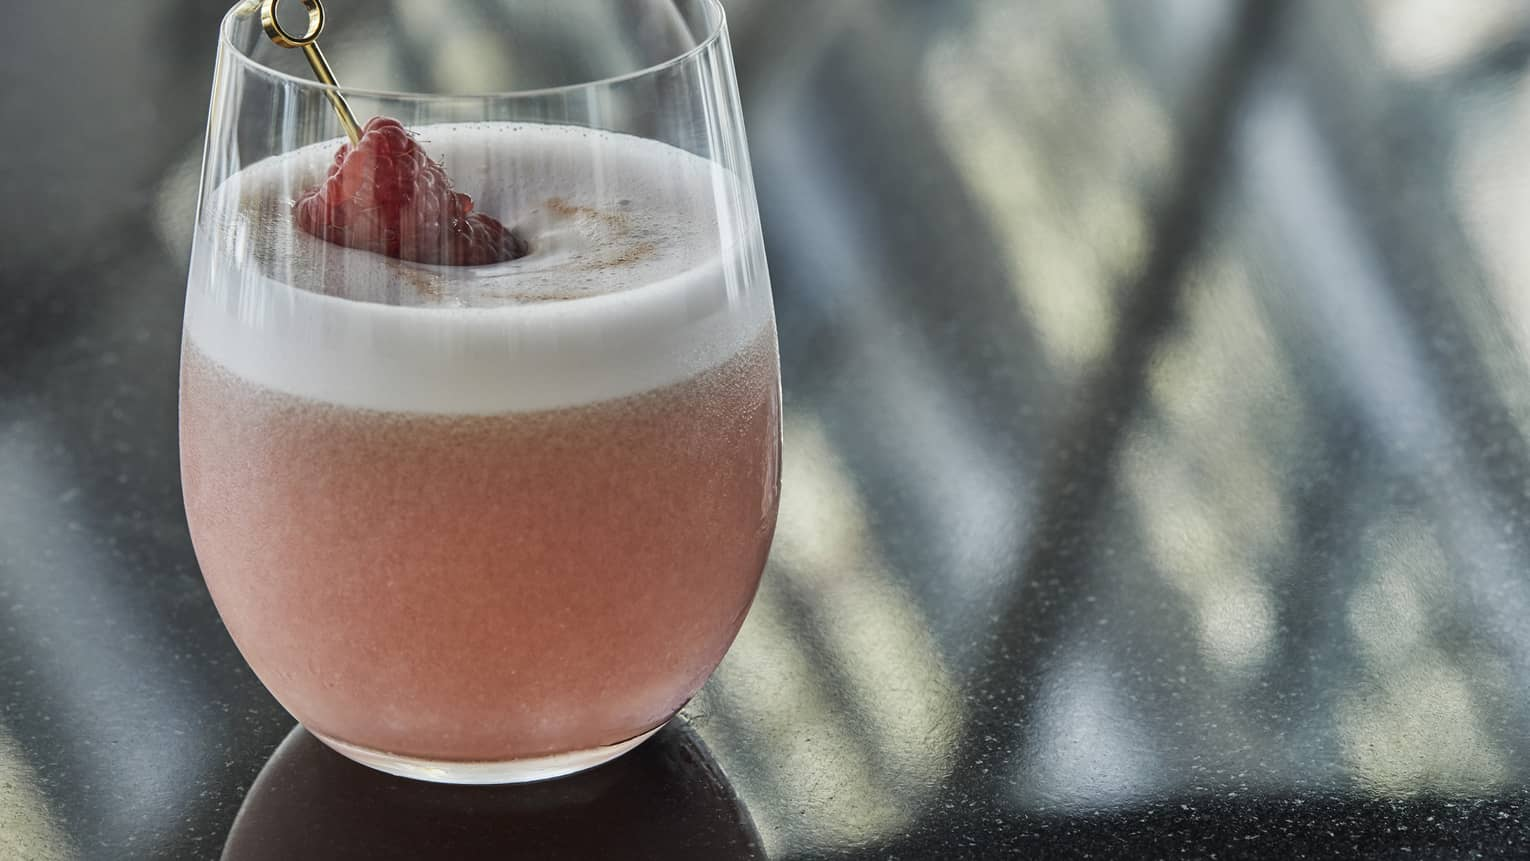 A pink fizzie cocktail garnished with a strawberry